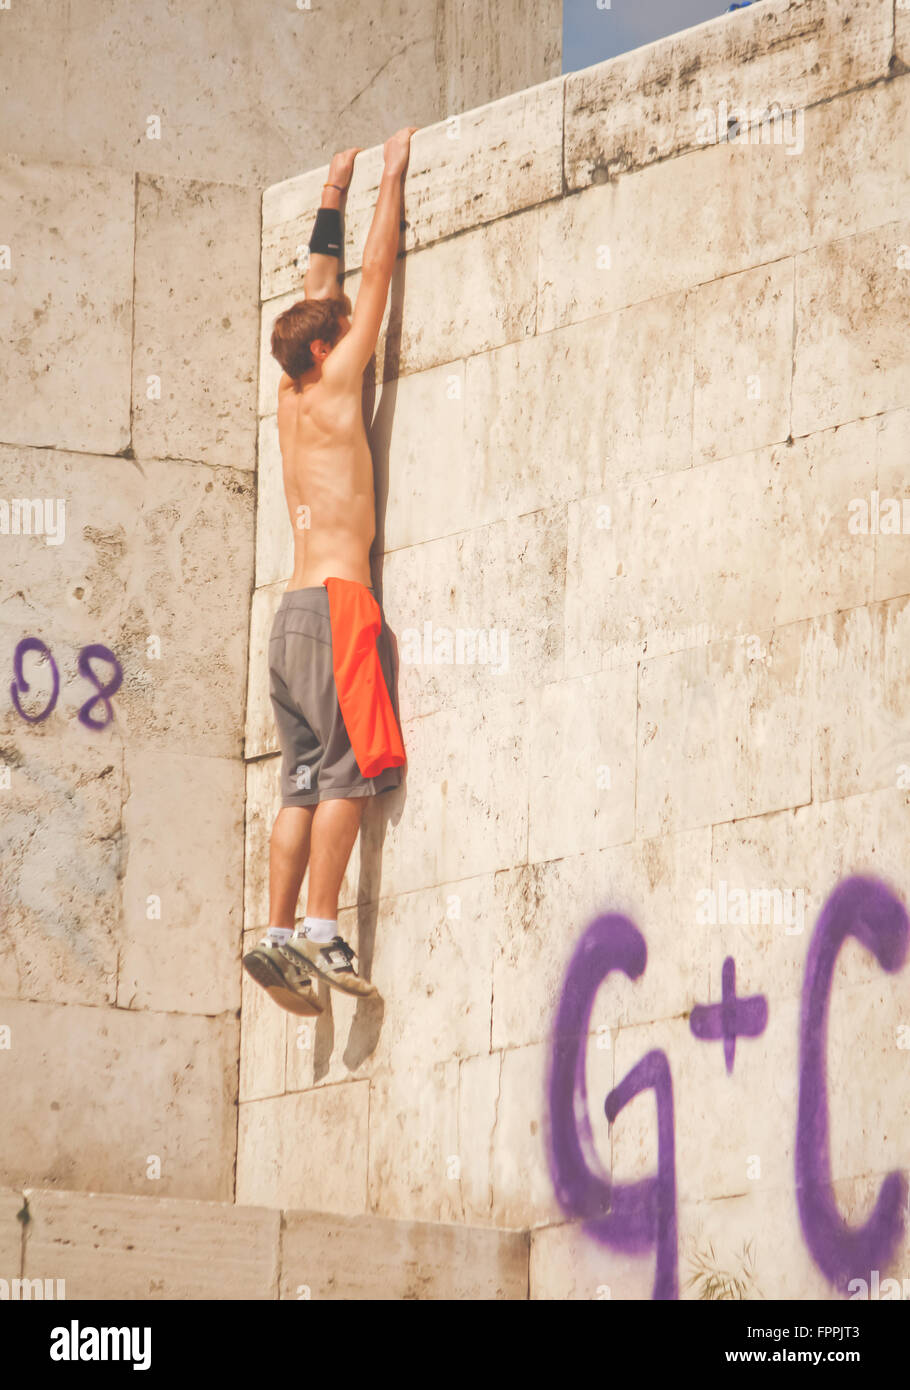 Rome, Italy - March 14, 2010: unidentified young man training in parkour. - Stock Image